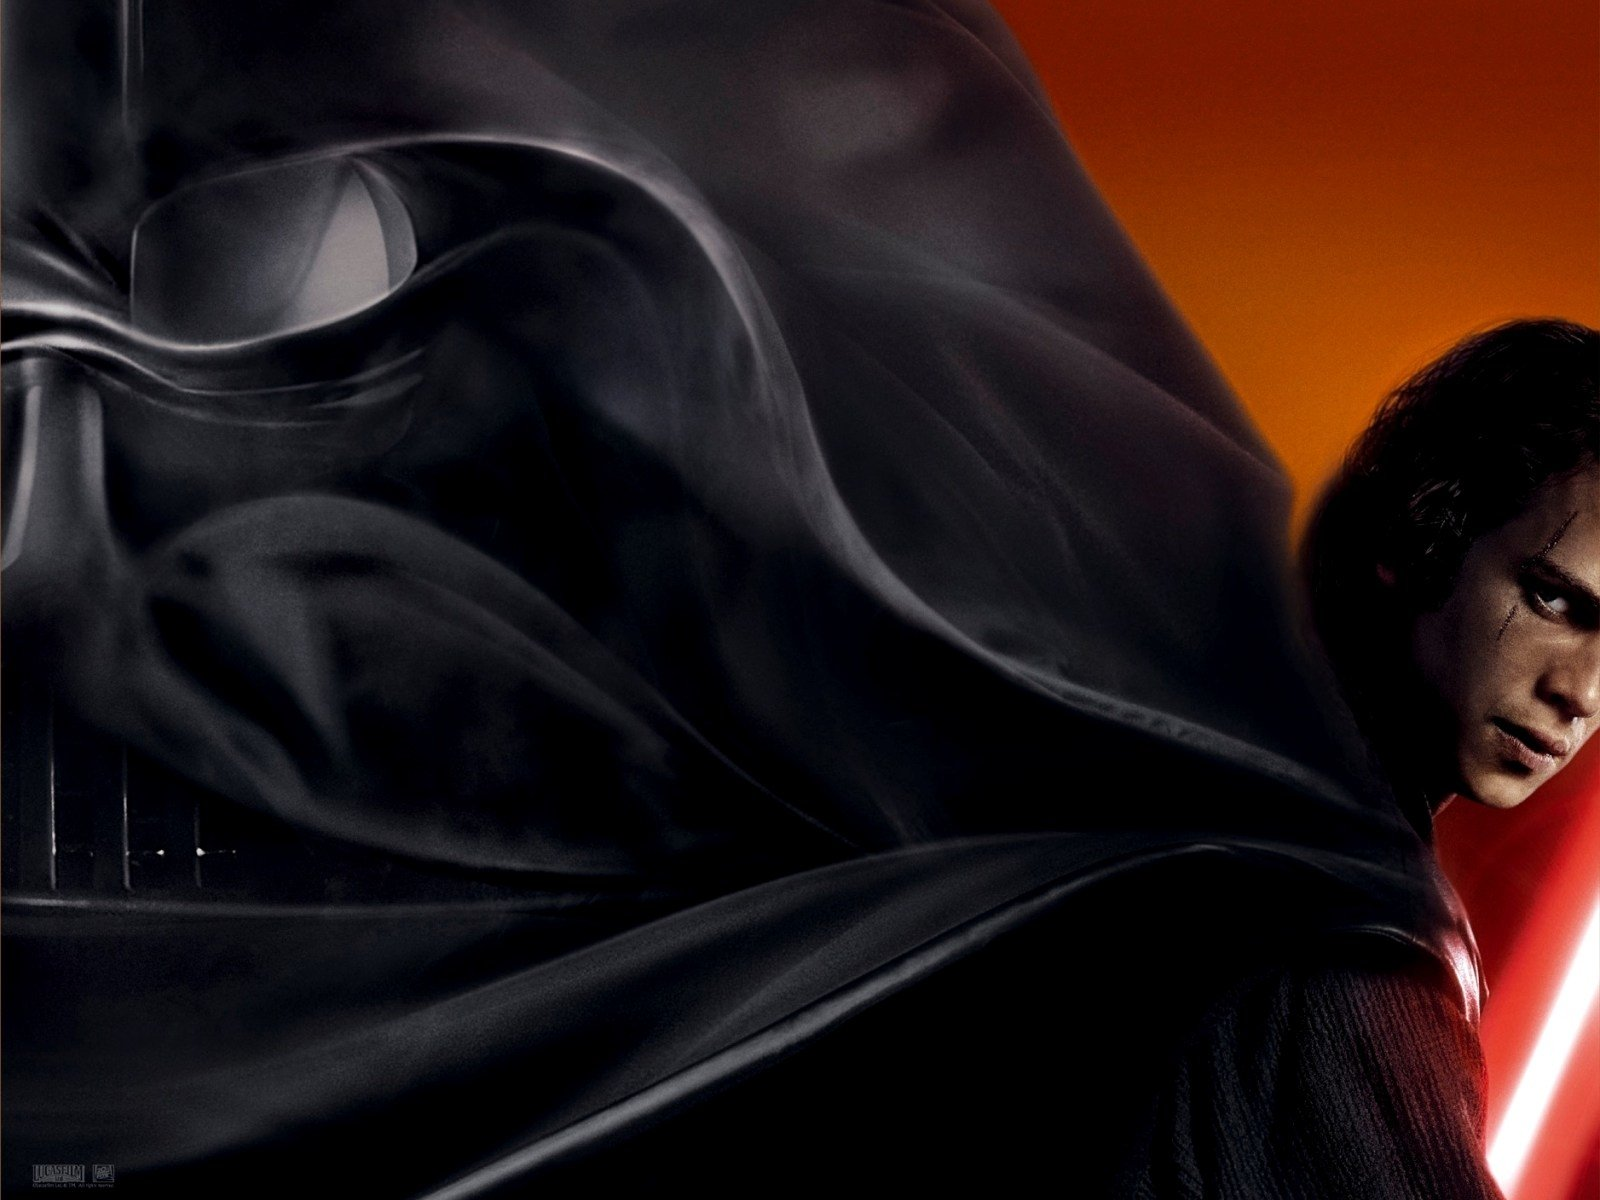 Star Wars Anakin Skywalker Wallpaper: Star Wars Wallpaper And Background Image